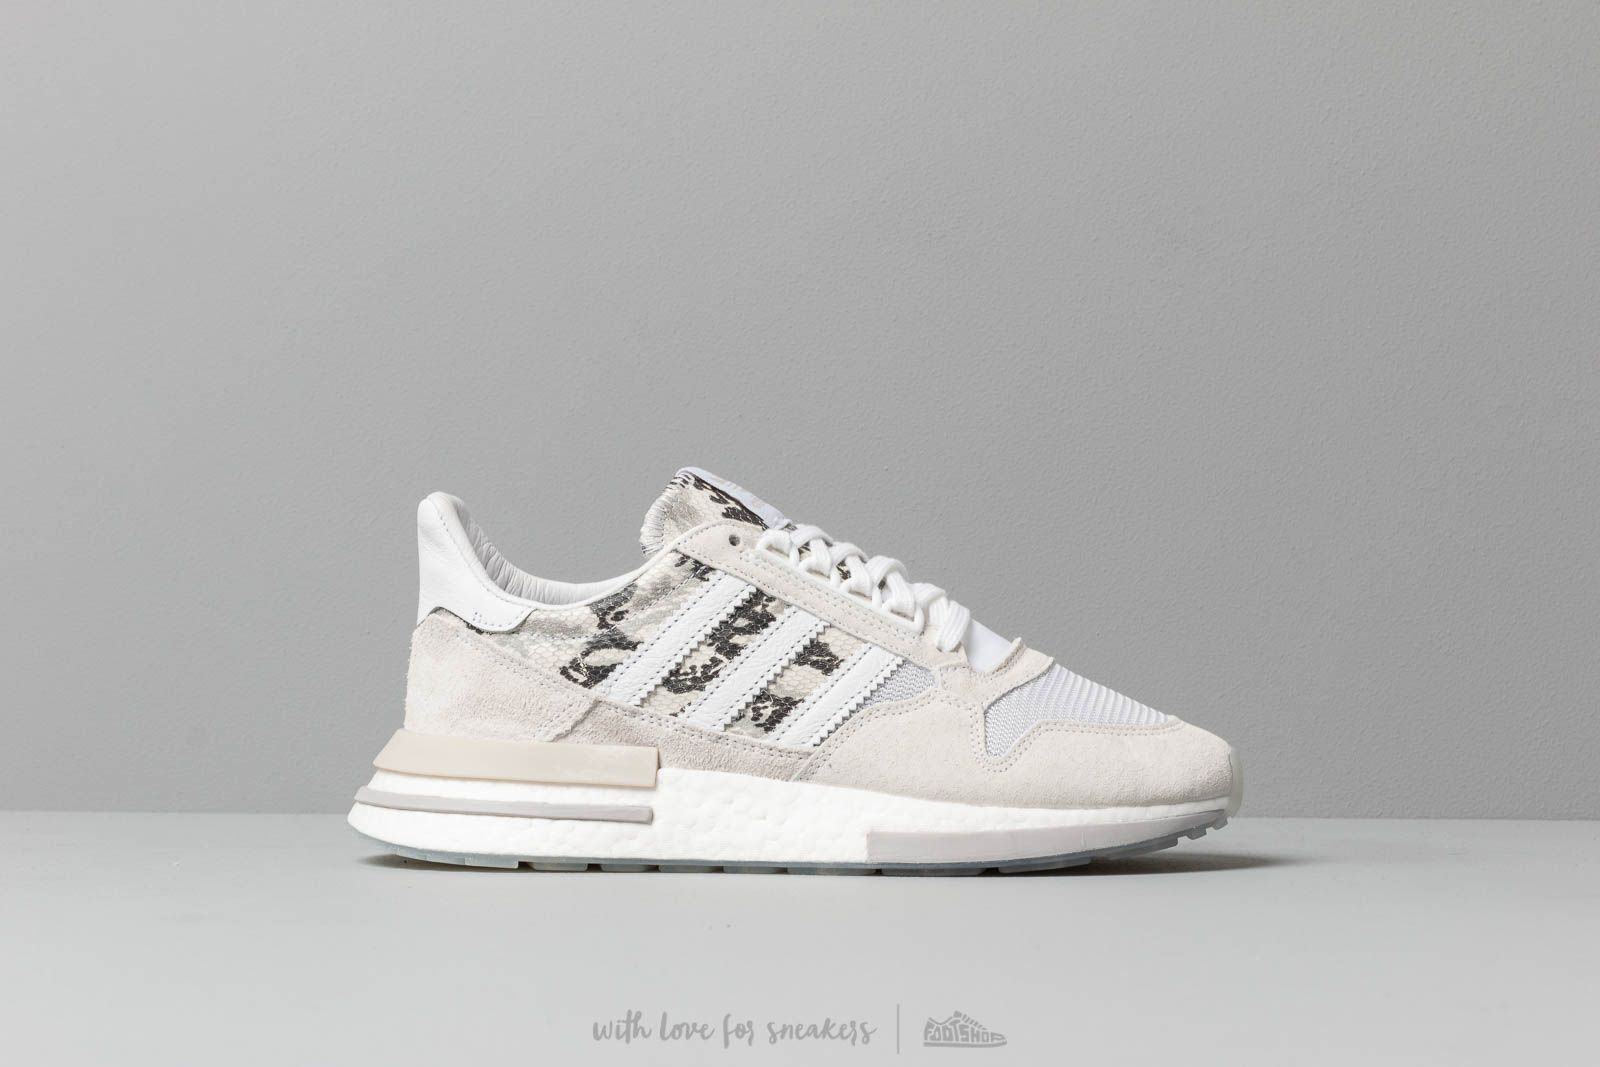 8c74911e78a4 adidas Zx 500 Rm Ftw White  Ftw White  Ftw White at a great price